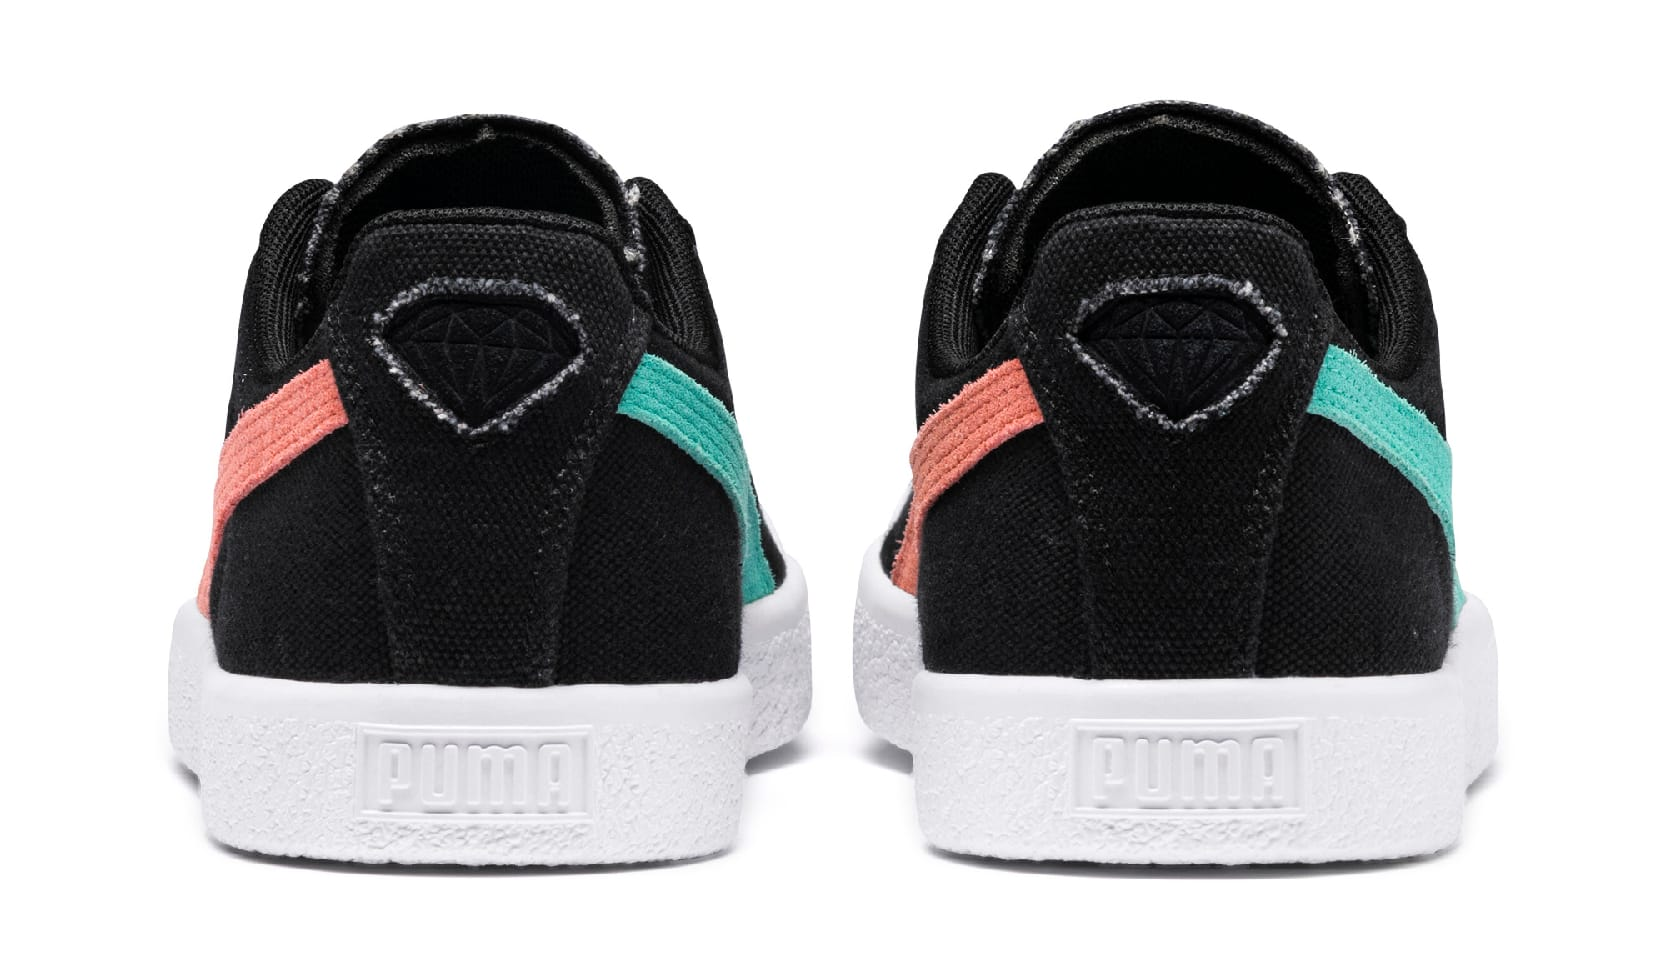 Diamond Supply Co. x Puma Clyde 369397 (Heel)